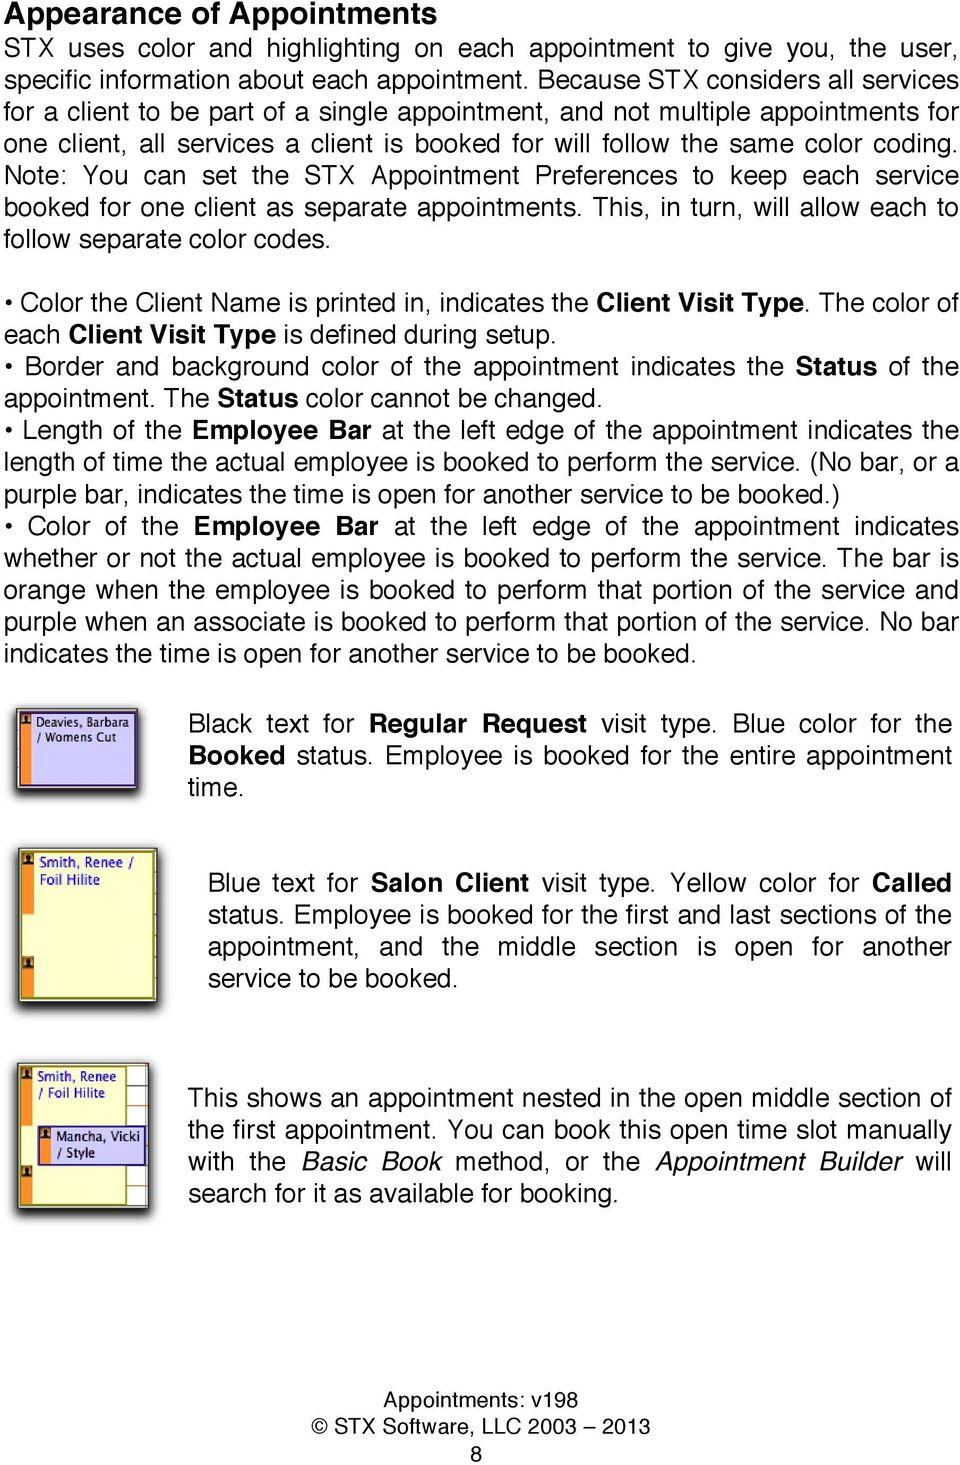 Note: You can set the STX Appointment Preferences to keep each service booked for one client as separate appointments. This, in turn, will allow each to follow separate color codes.